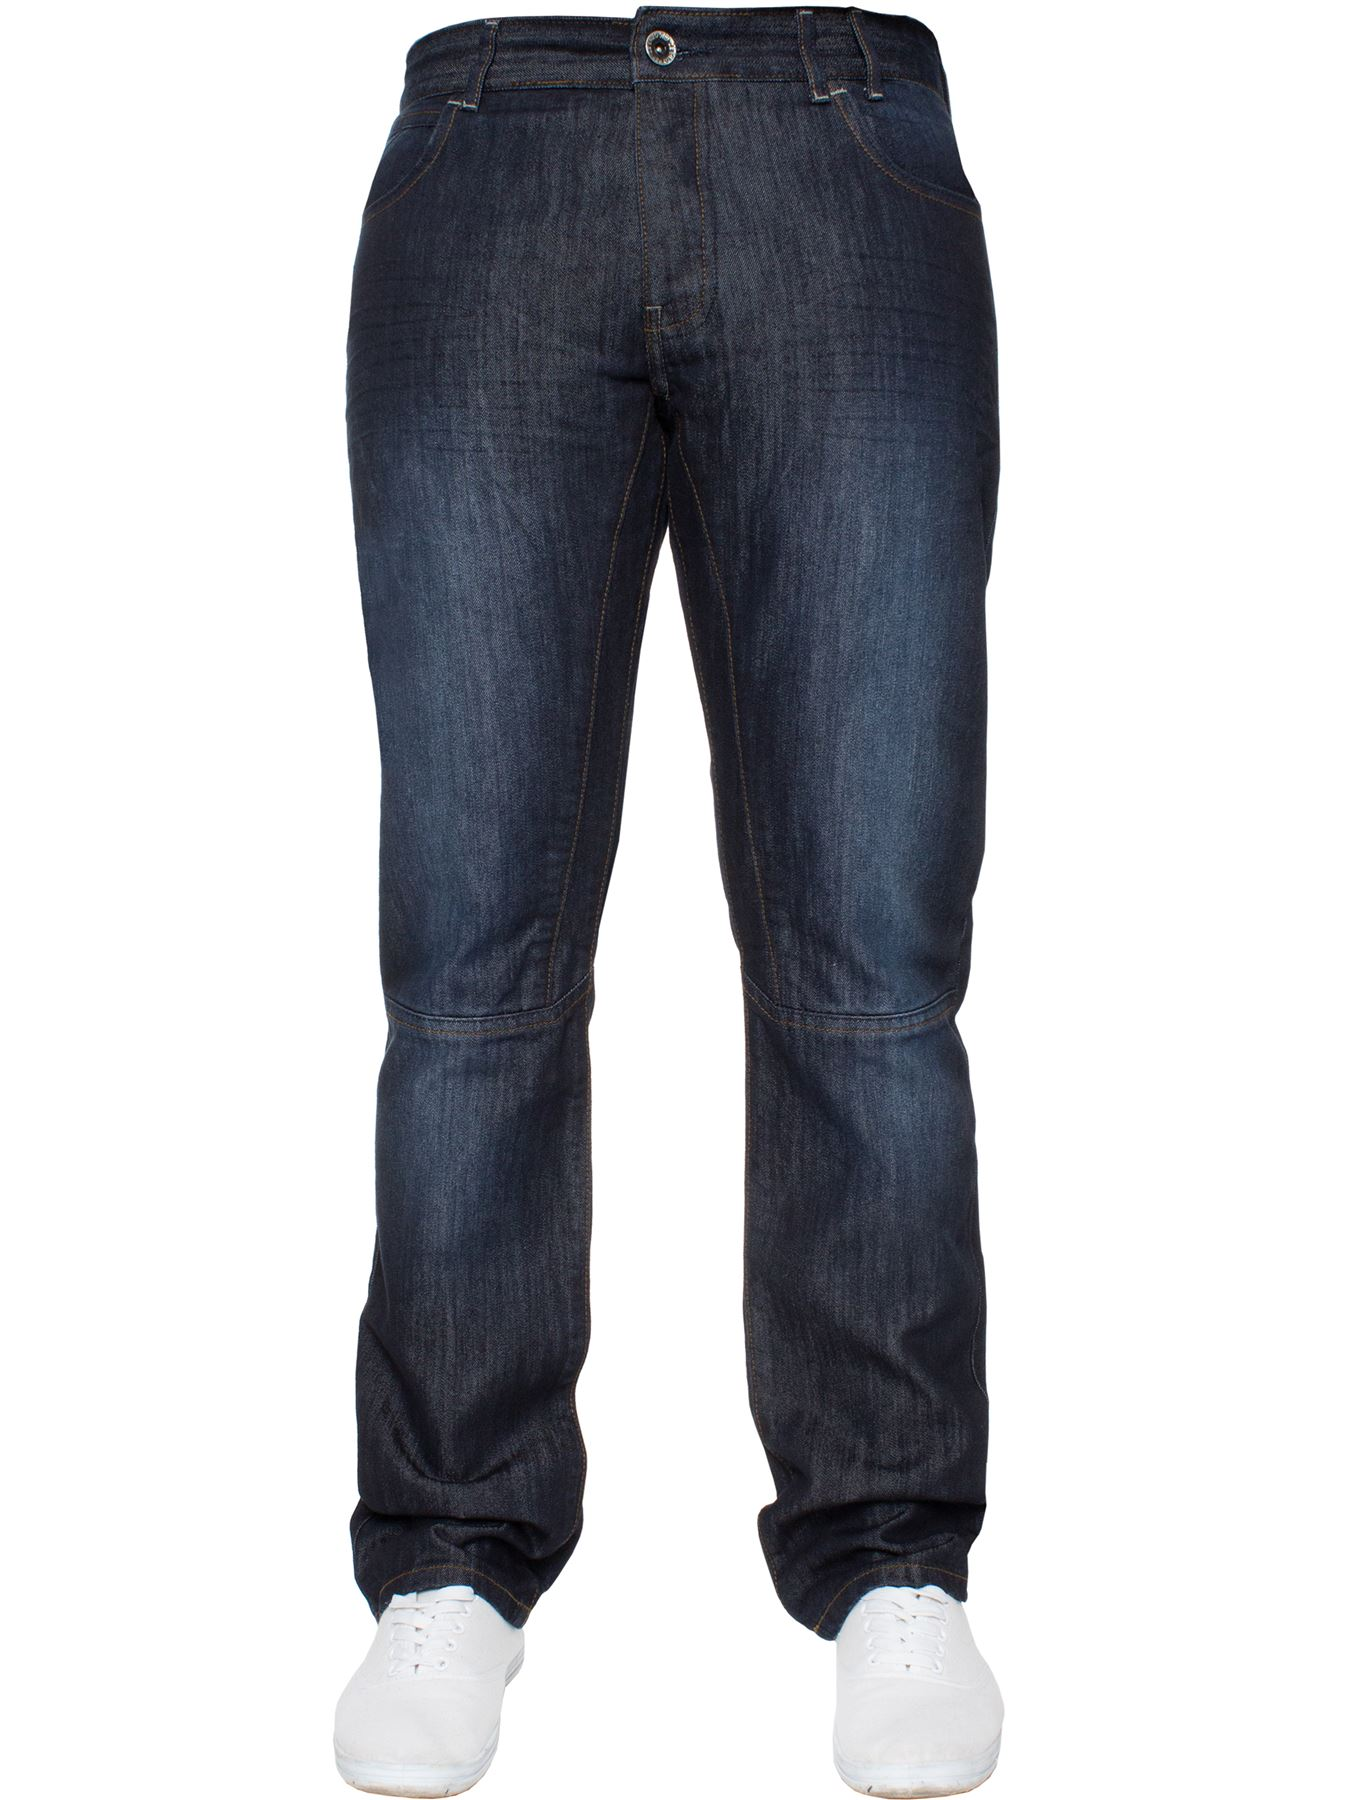 Enzo-Mens-Straight-Jeans-Regular-Leg-Designer-Work-Denim-Pants-All-Waists-Sizes thumbnail 37